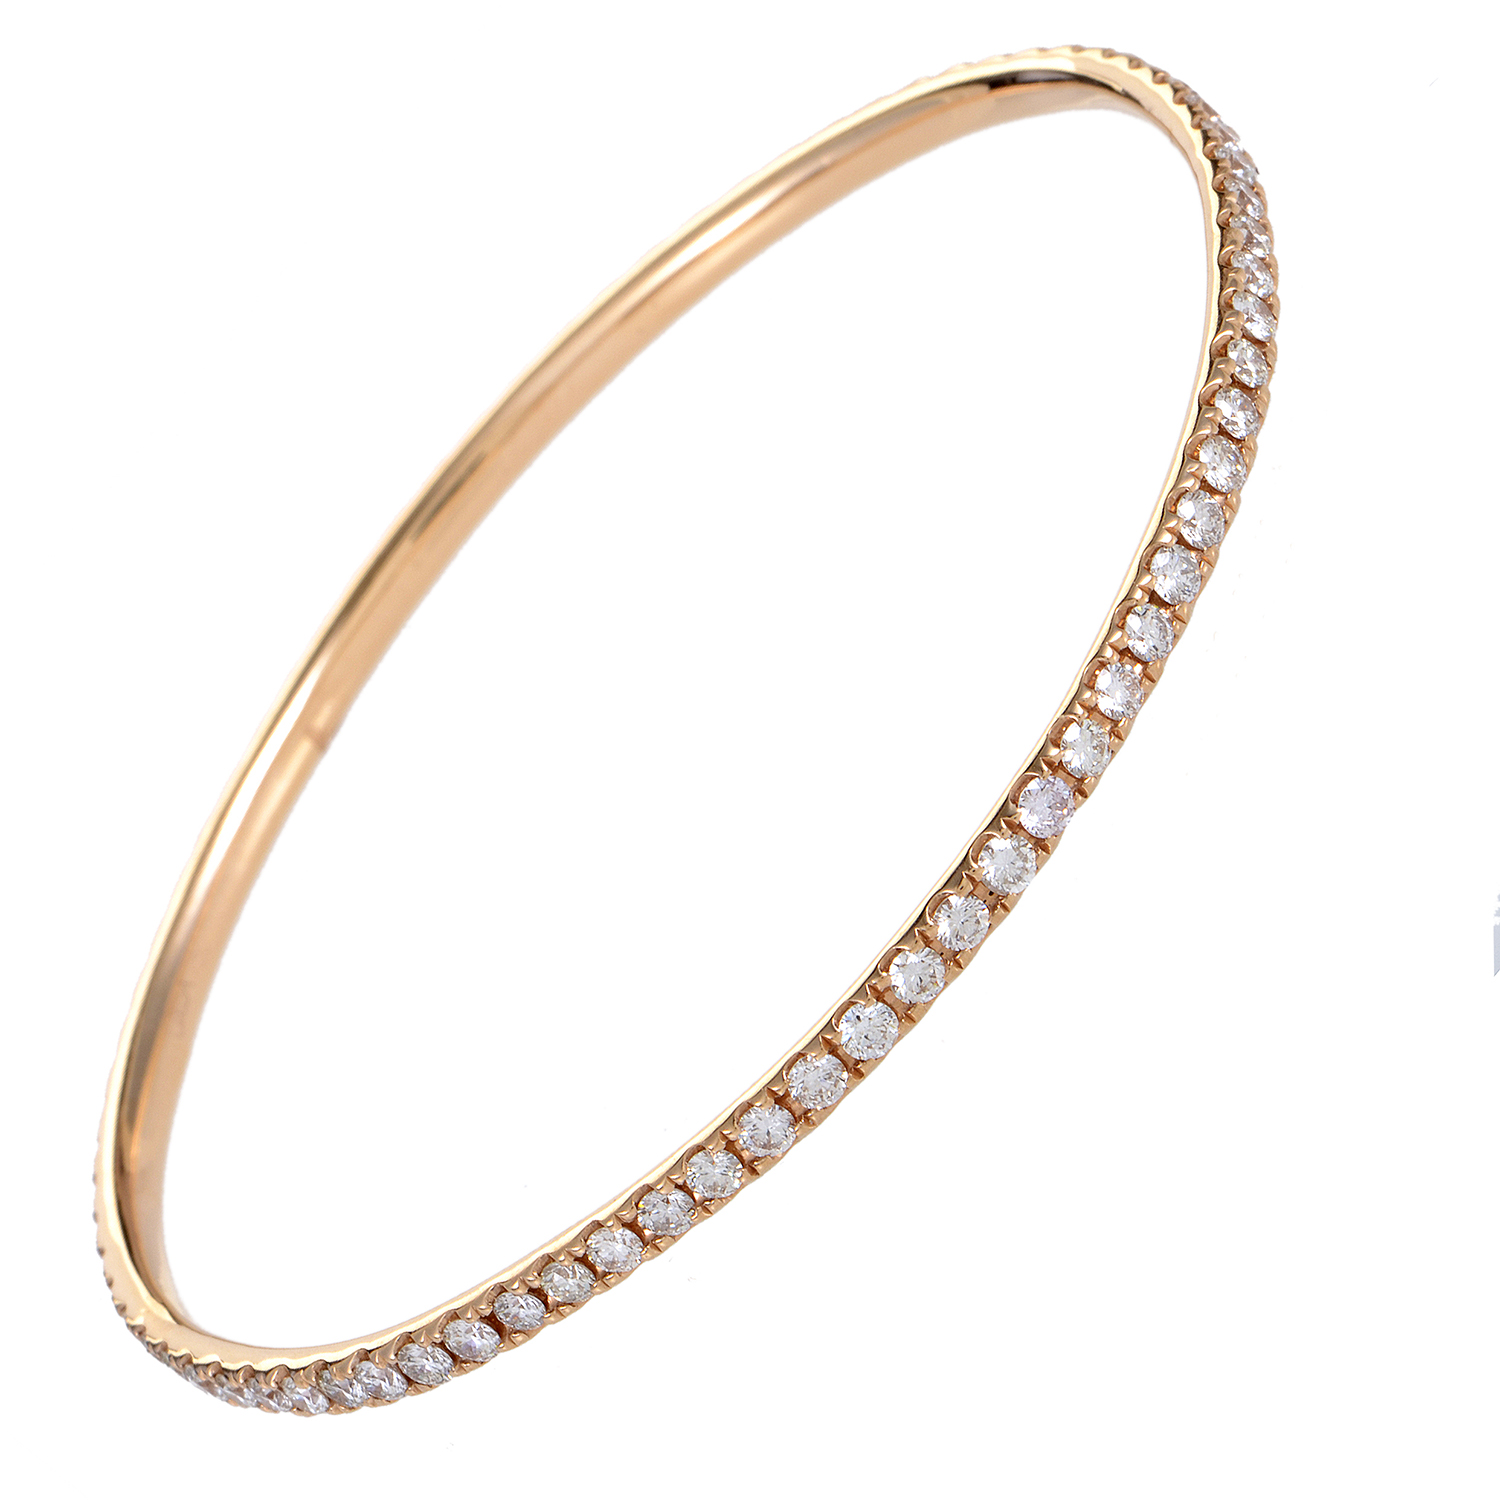 Women's 18K Rose Gold Diamond Pave Bangle Bracelet ALB-7508R